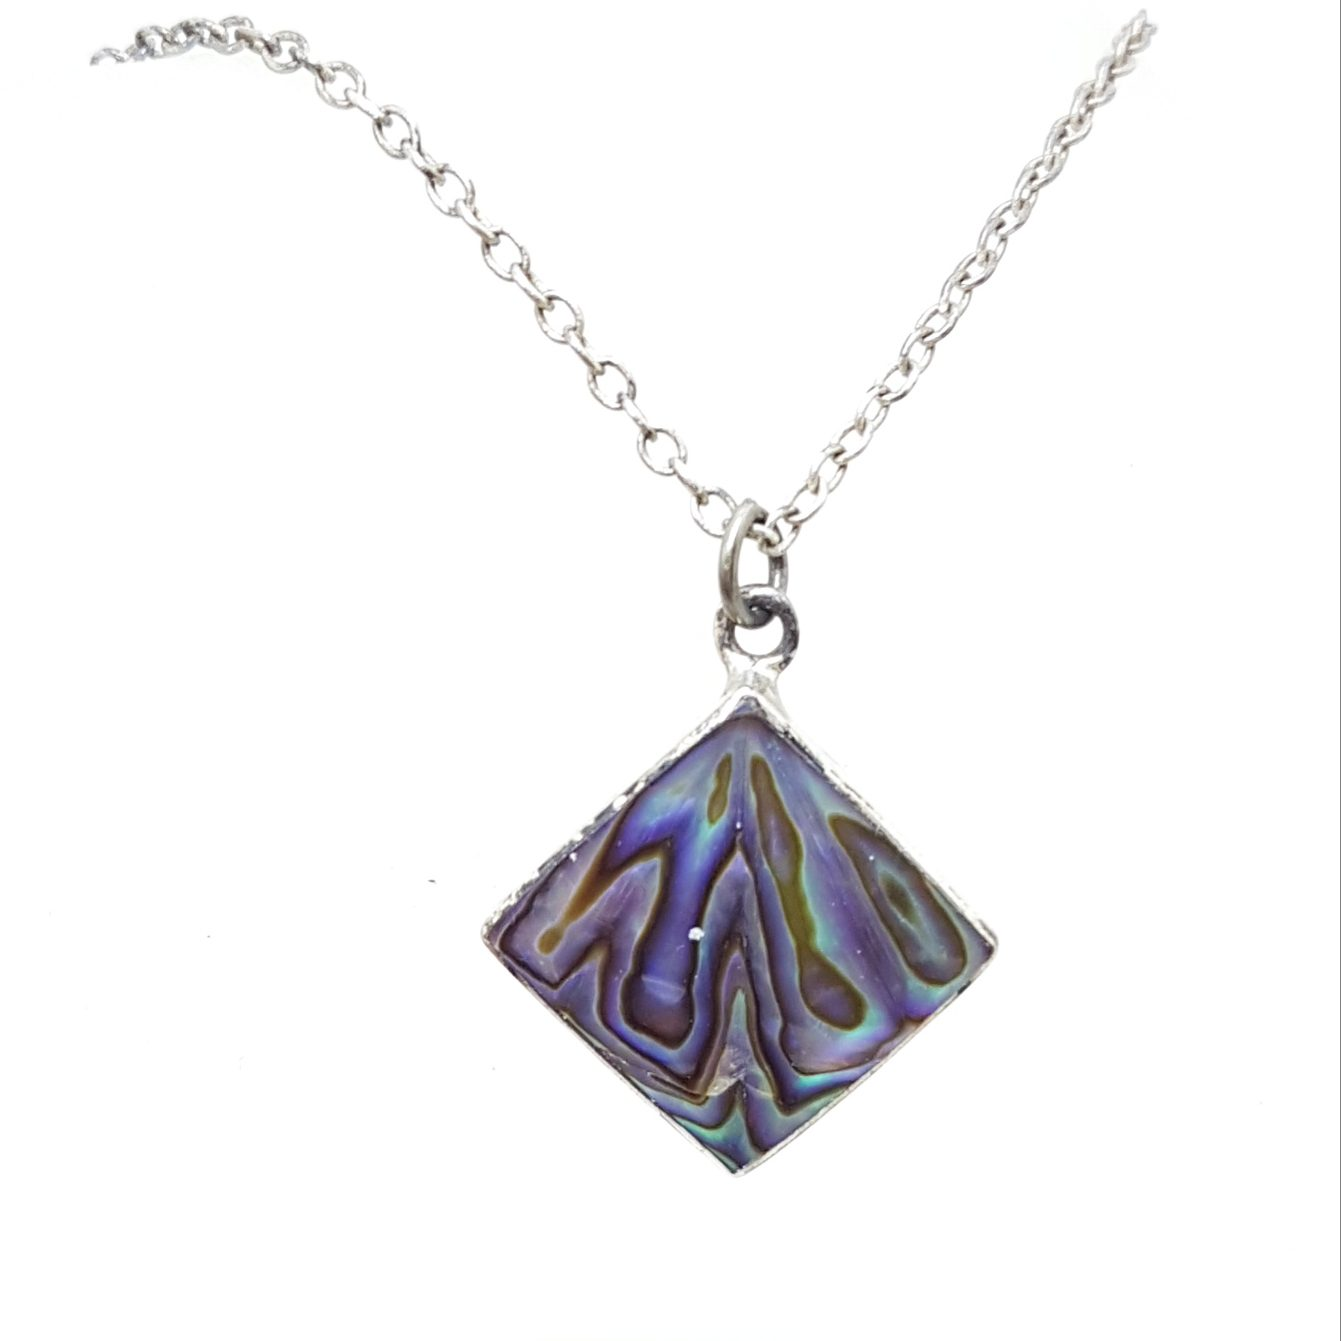 Sterling Silver Square Paua Shell Pendant on Silver Chain - Vintage